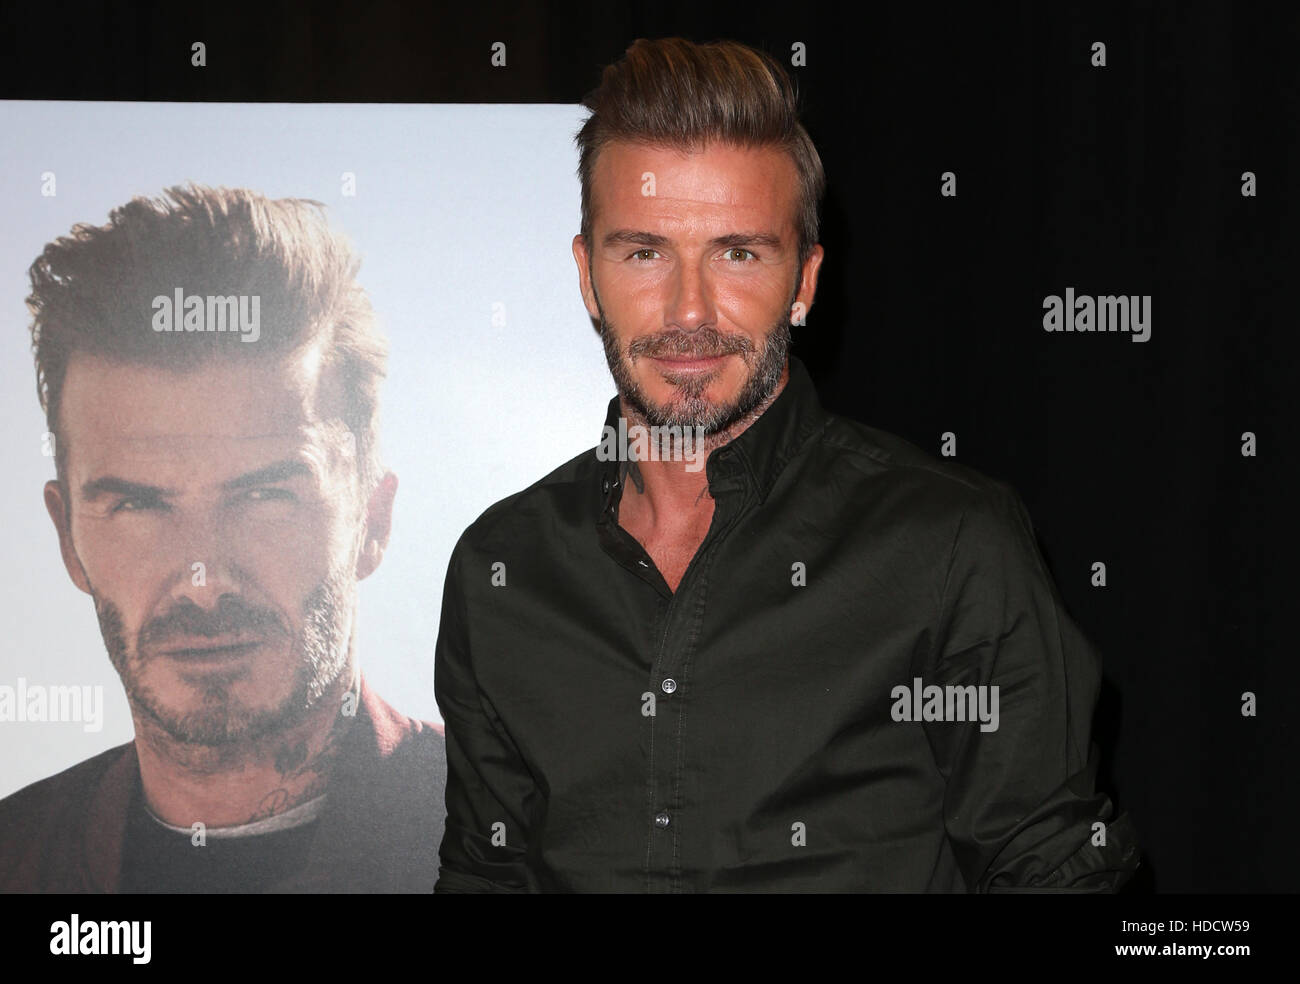 David Beckham 16 High Resolution Stock Photography And Images Alamy